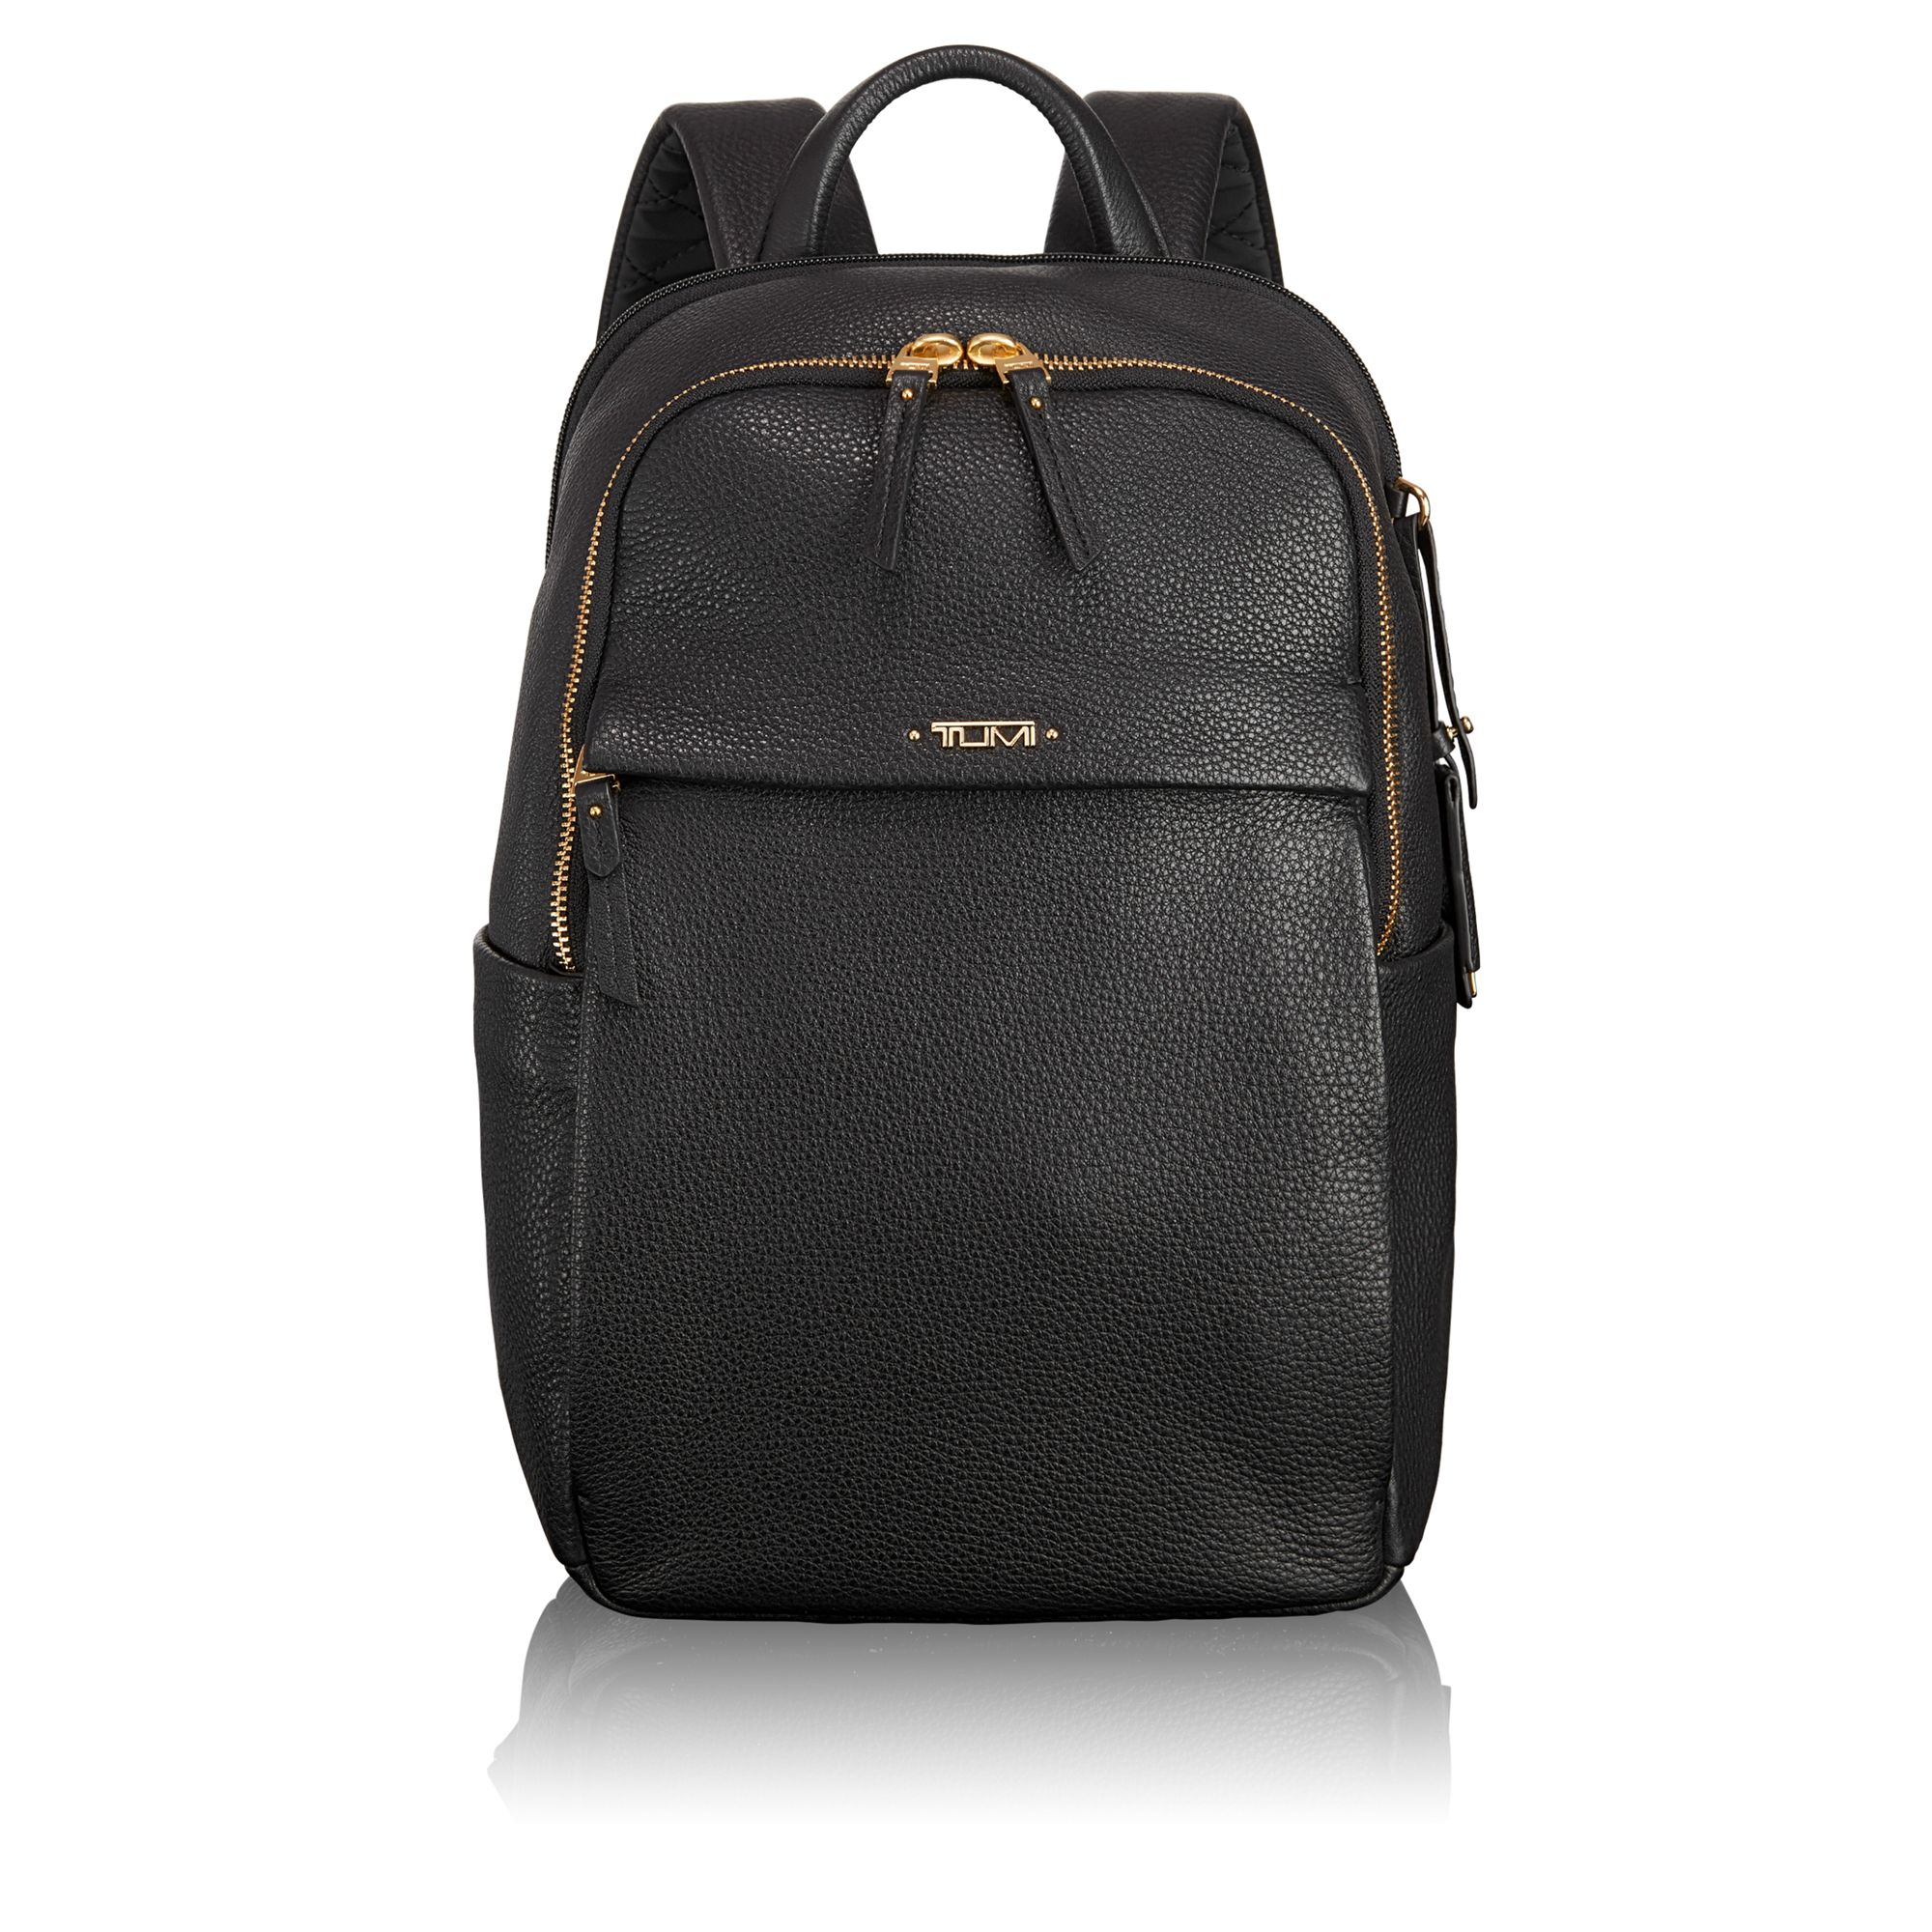 View All Luggage, Travel Bags, Accessories for Women - Tumi United ...